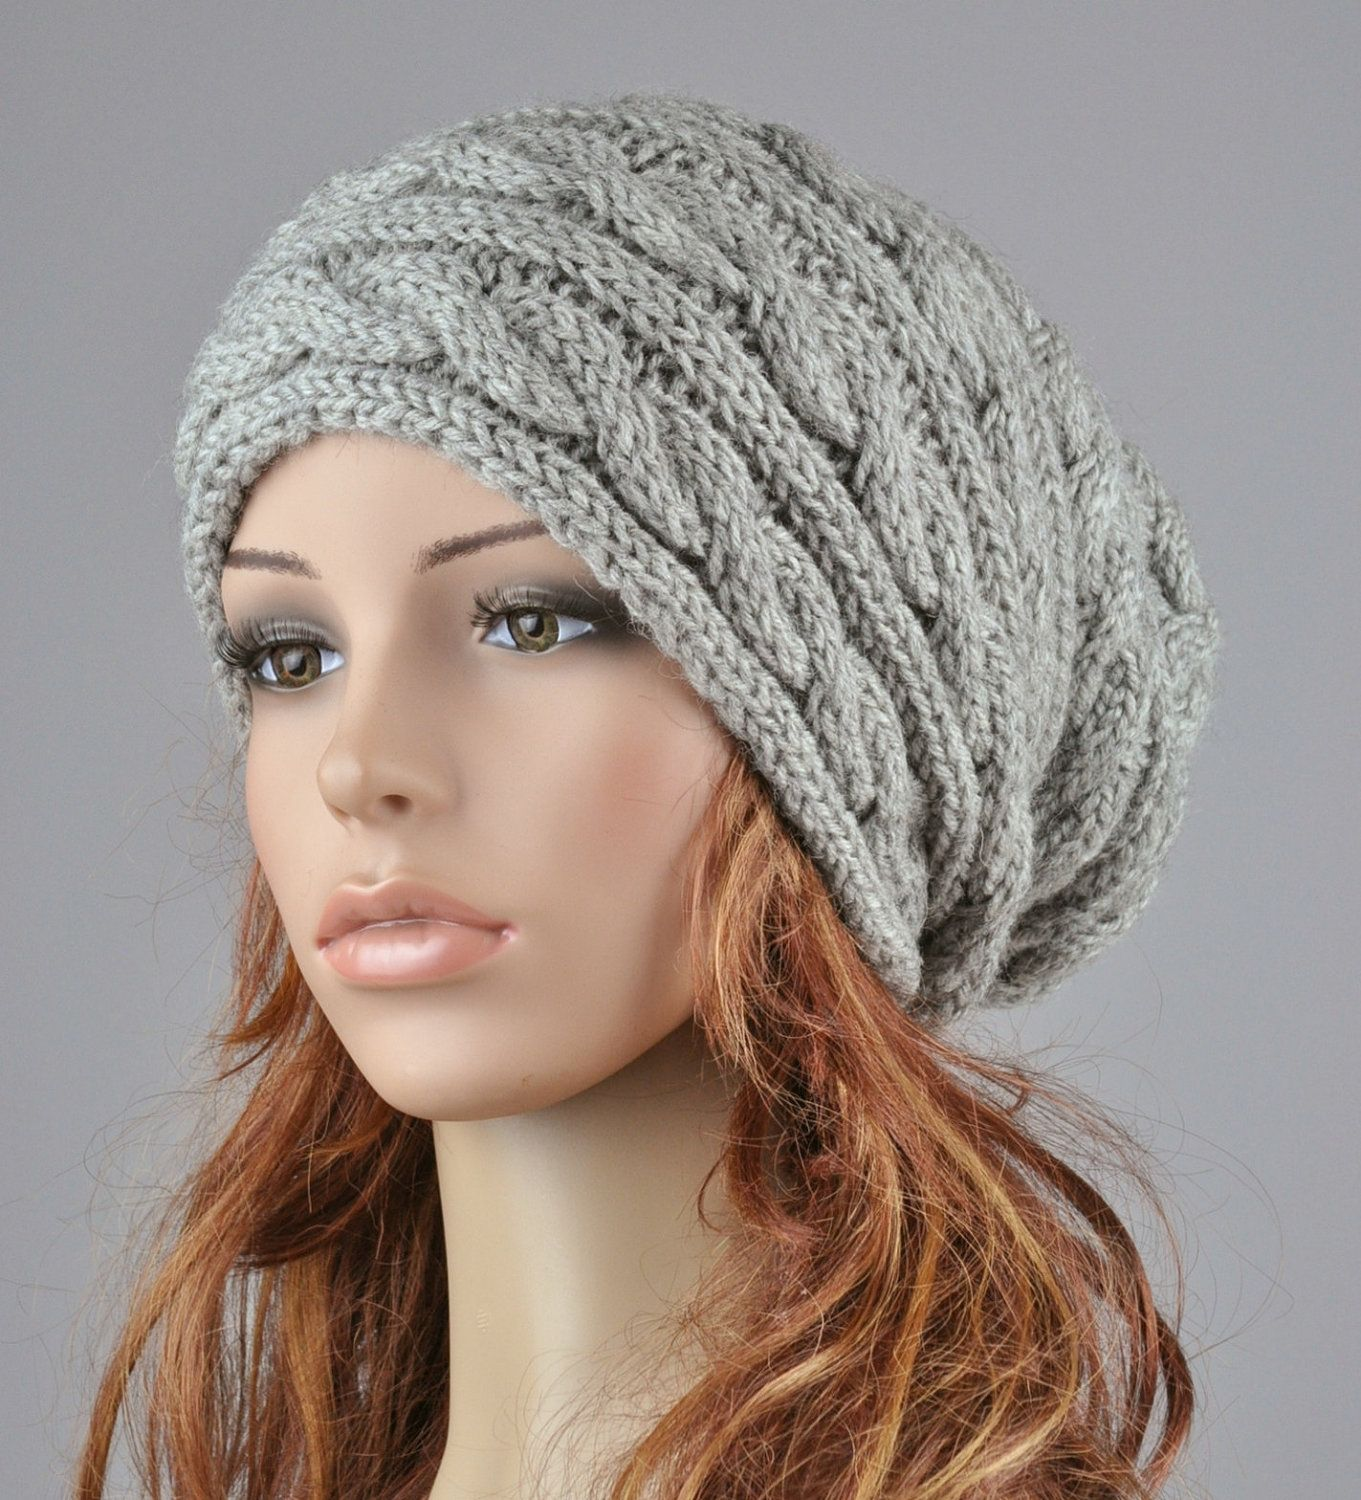 Hand knit hat grey hat slouchy hat cable pattern hat hand knit hat grey hat slouchy hat cable pattern hat bankloansurffo Gallery